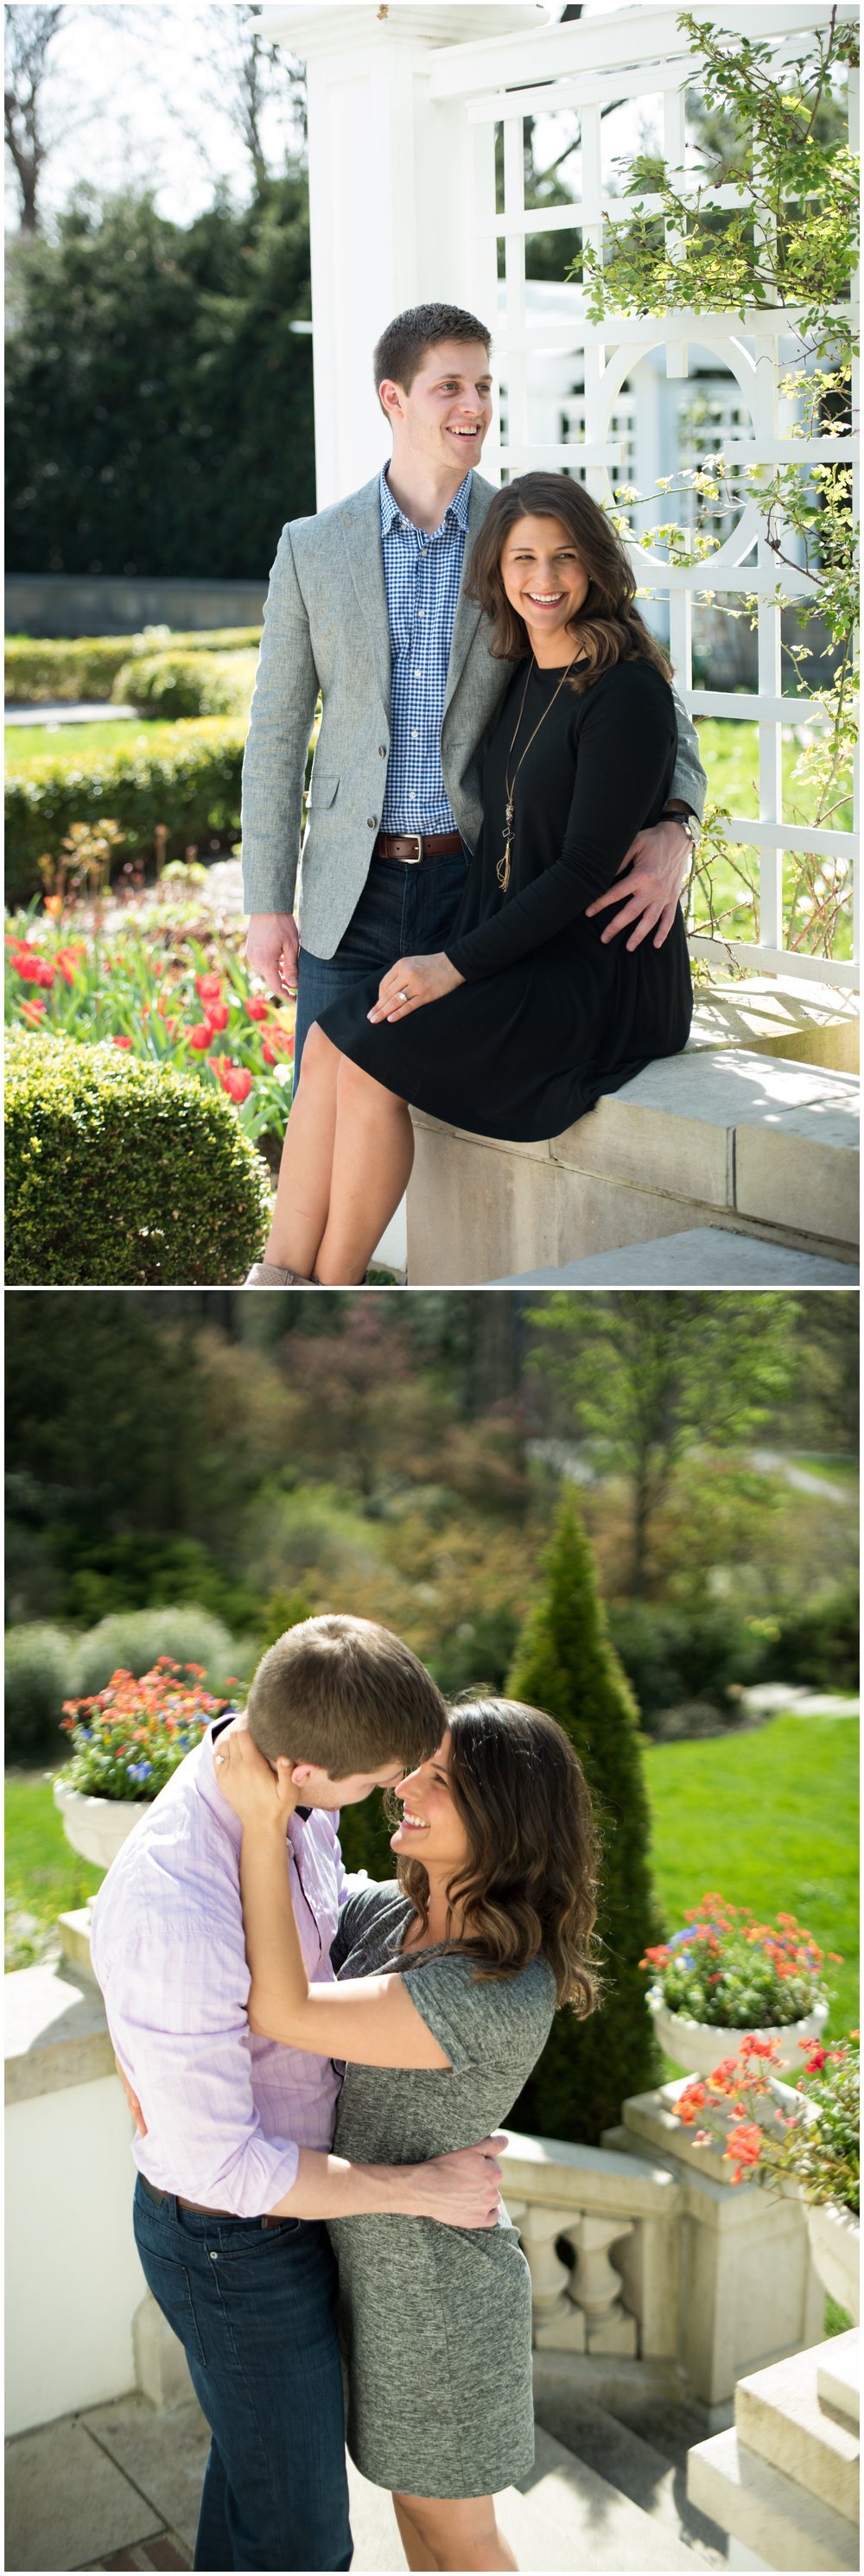 Indianapolis Engagement Session at the IMA by Rachael Foster Photography_0007.jpg